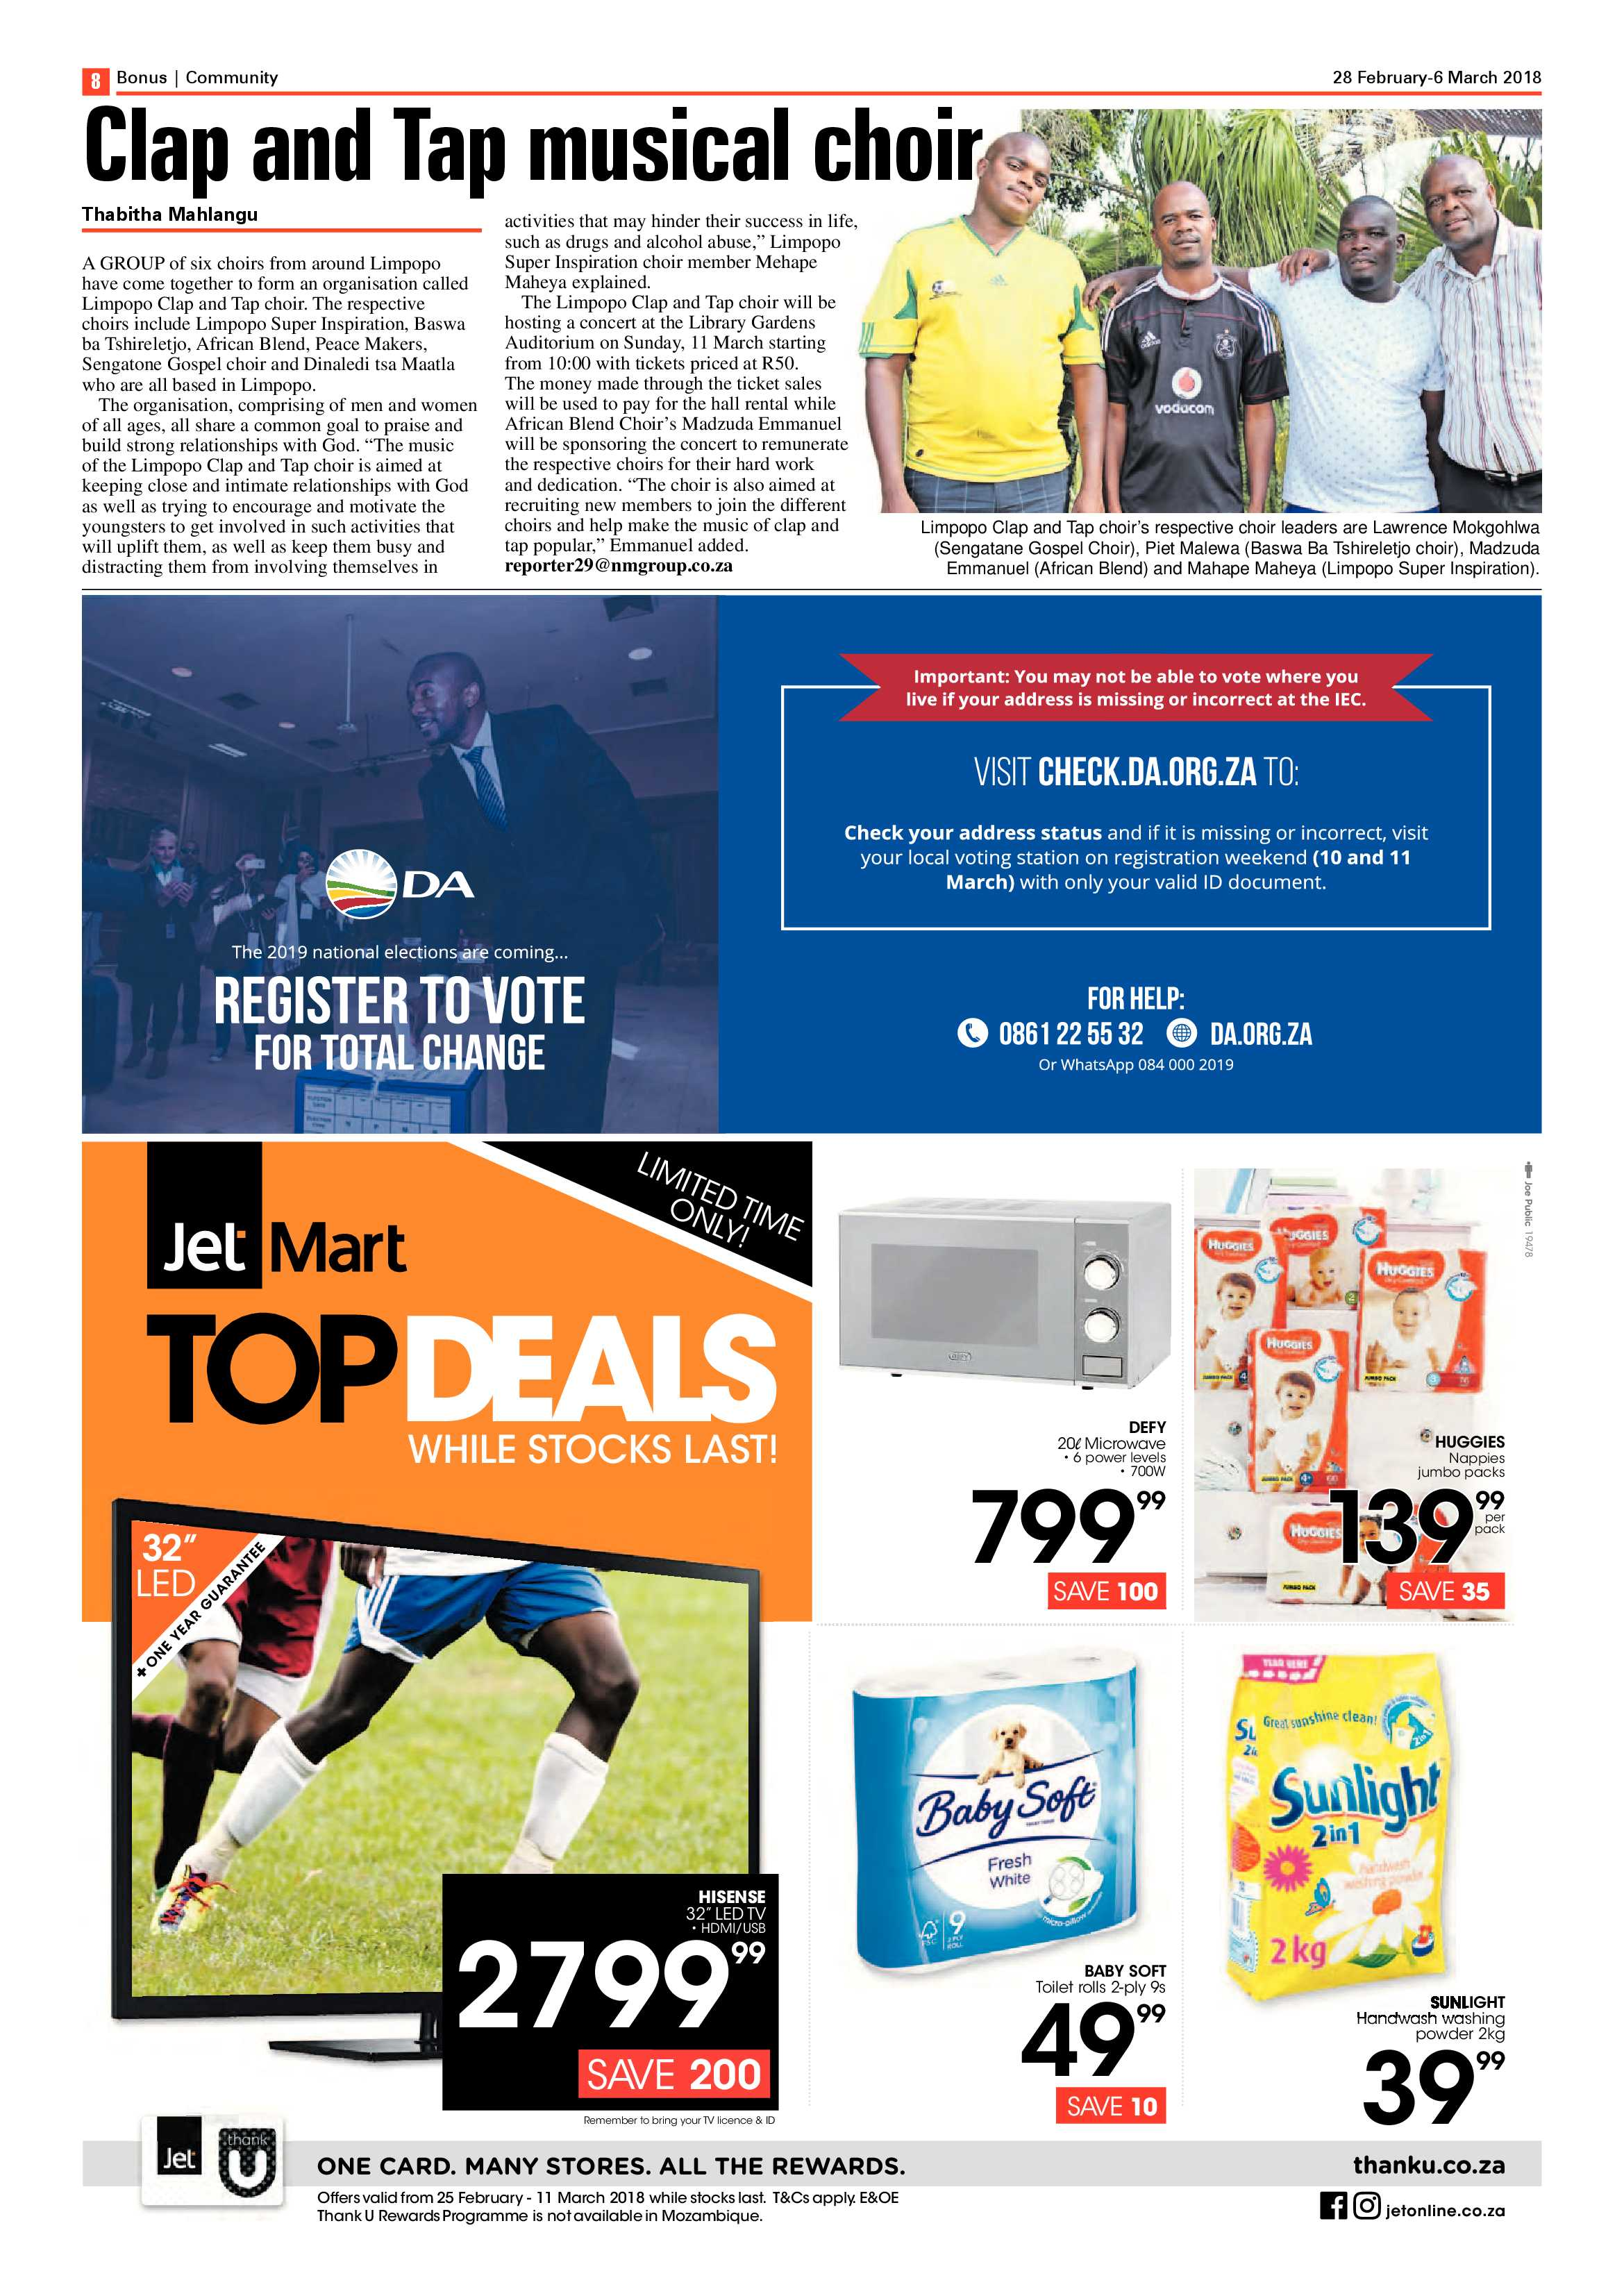 review-bonus-28-february-2018-epapers-page-8